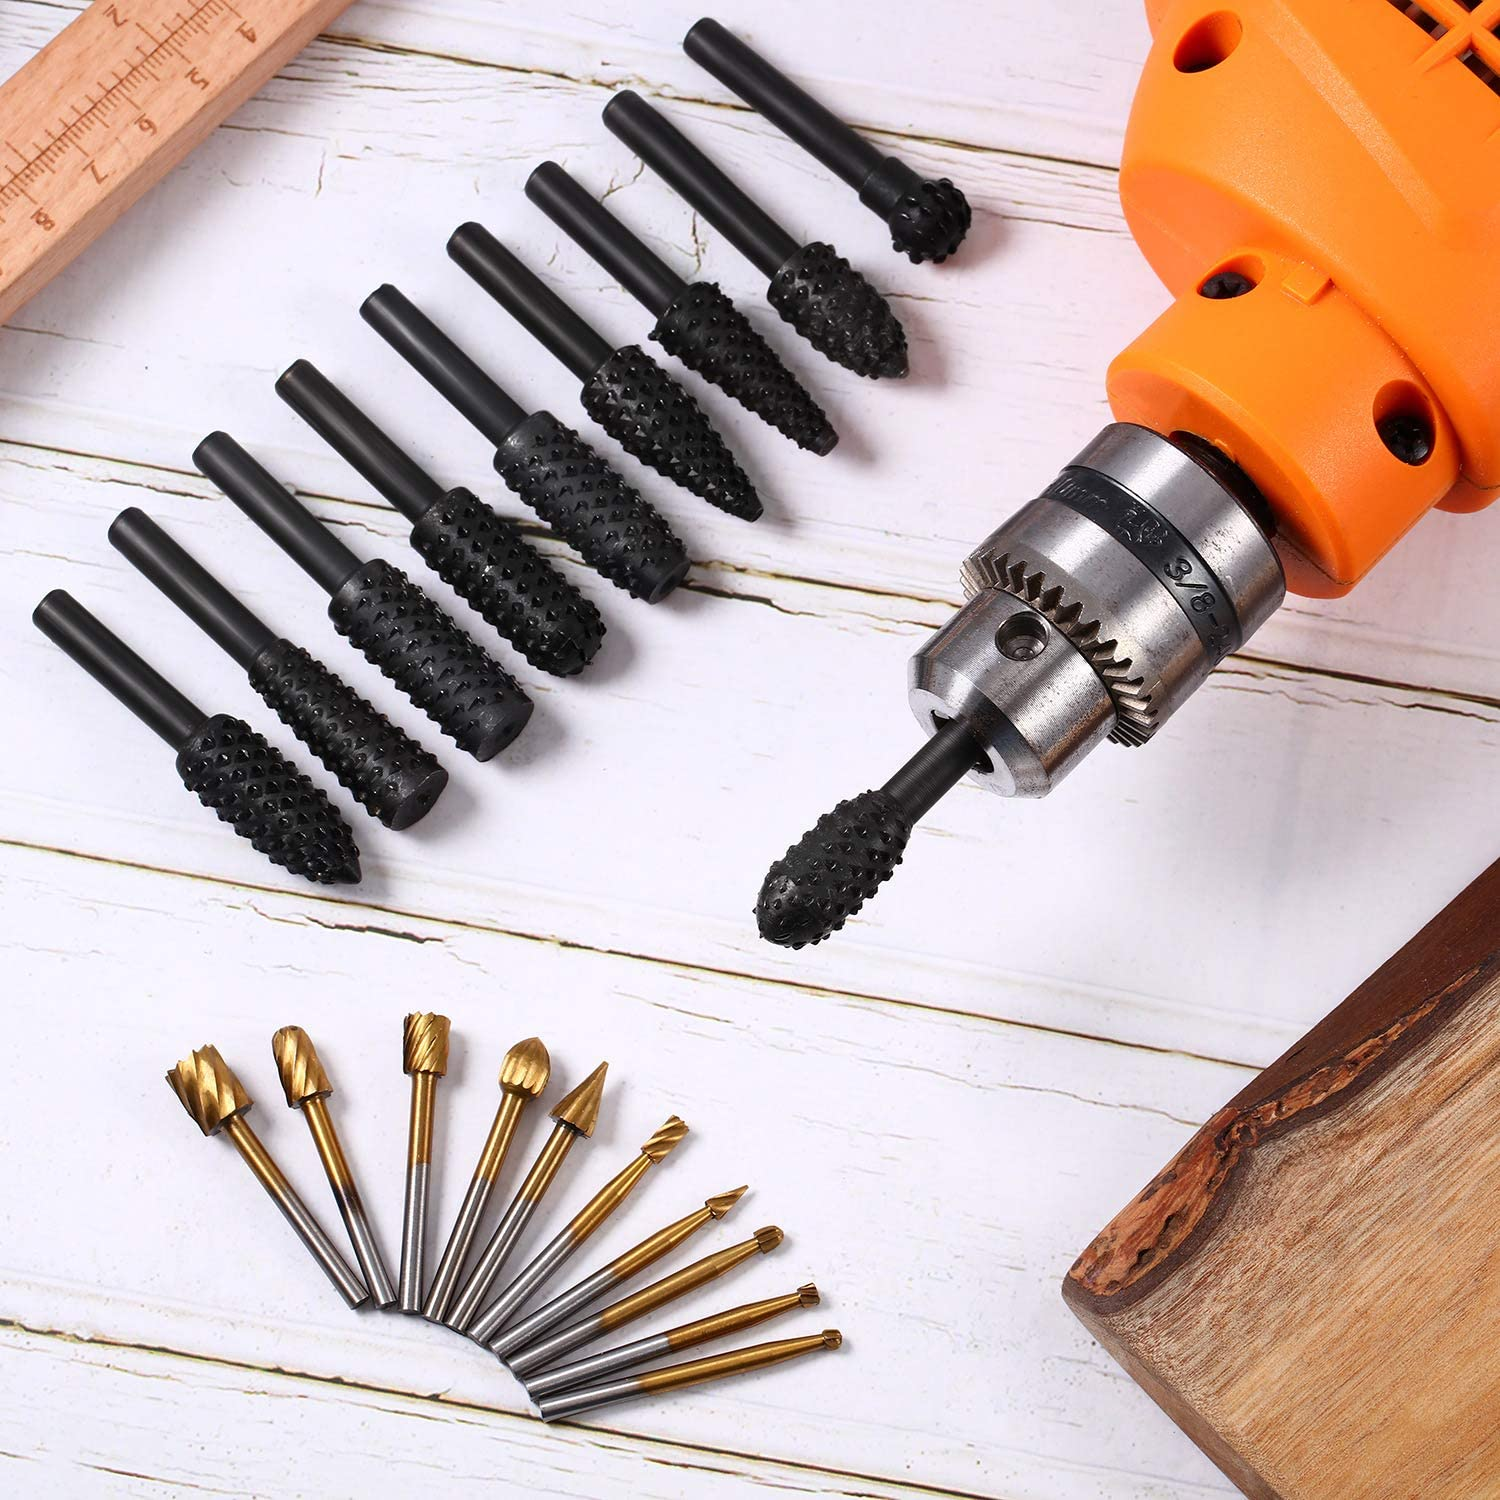 10 Pieces Woodworking Drill Bits High Speed Rasp Drill Bit with 1//8 Inch Shank and 10 Pieces Carving Drill Bits with 1//4 Inch Shank for DIY Woodworking Carving Drilling Black and Gold